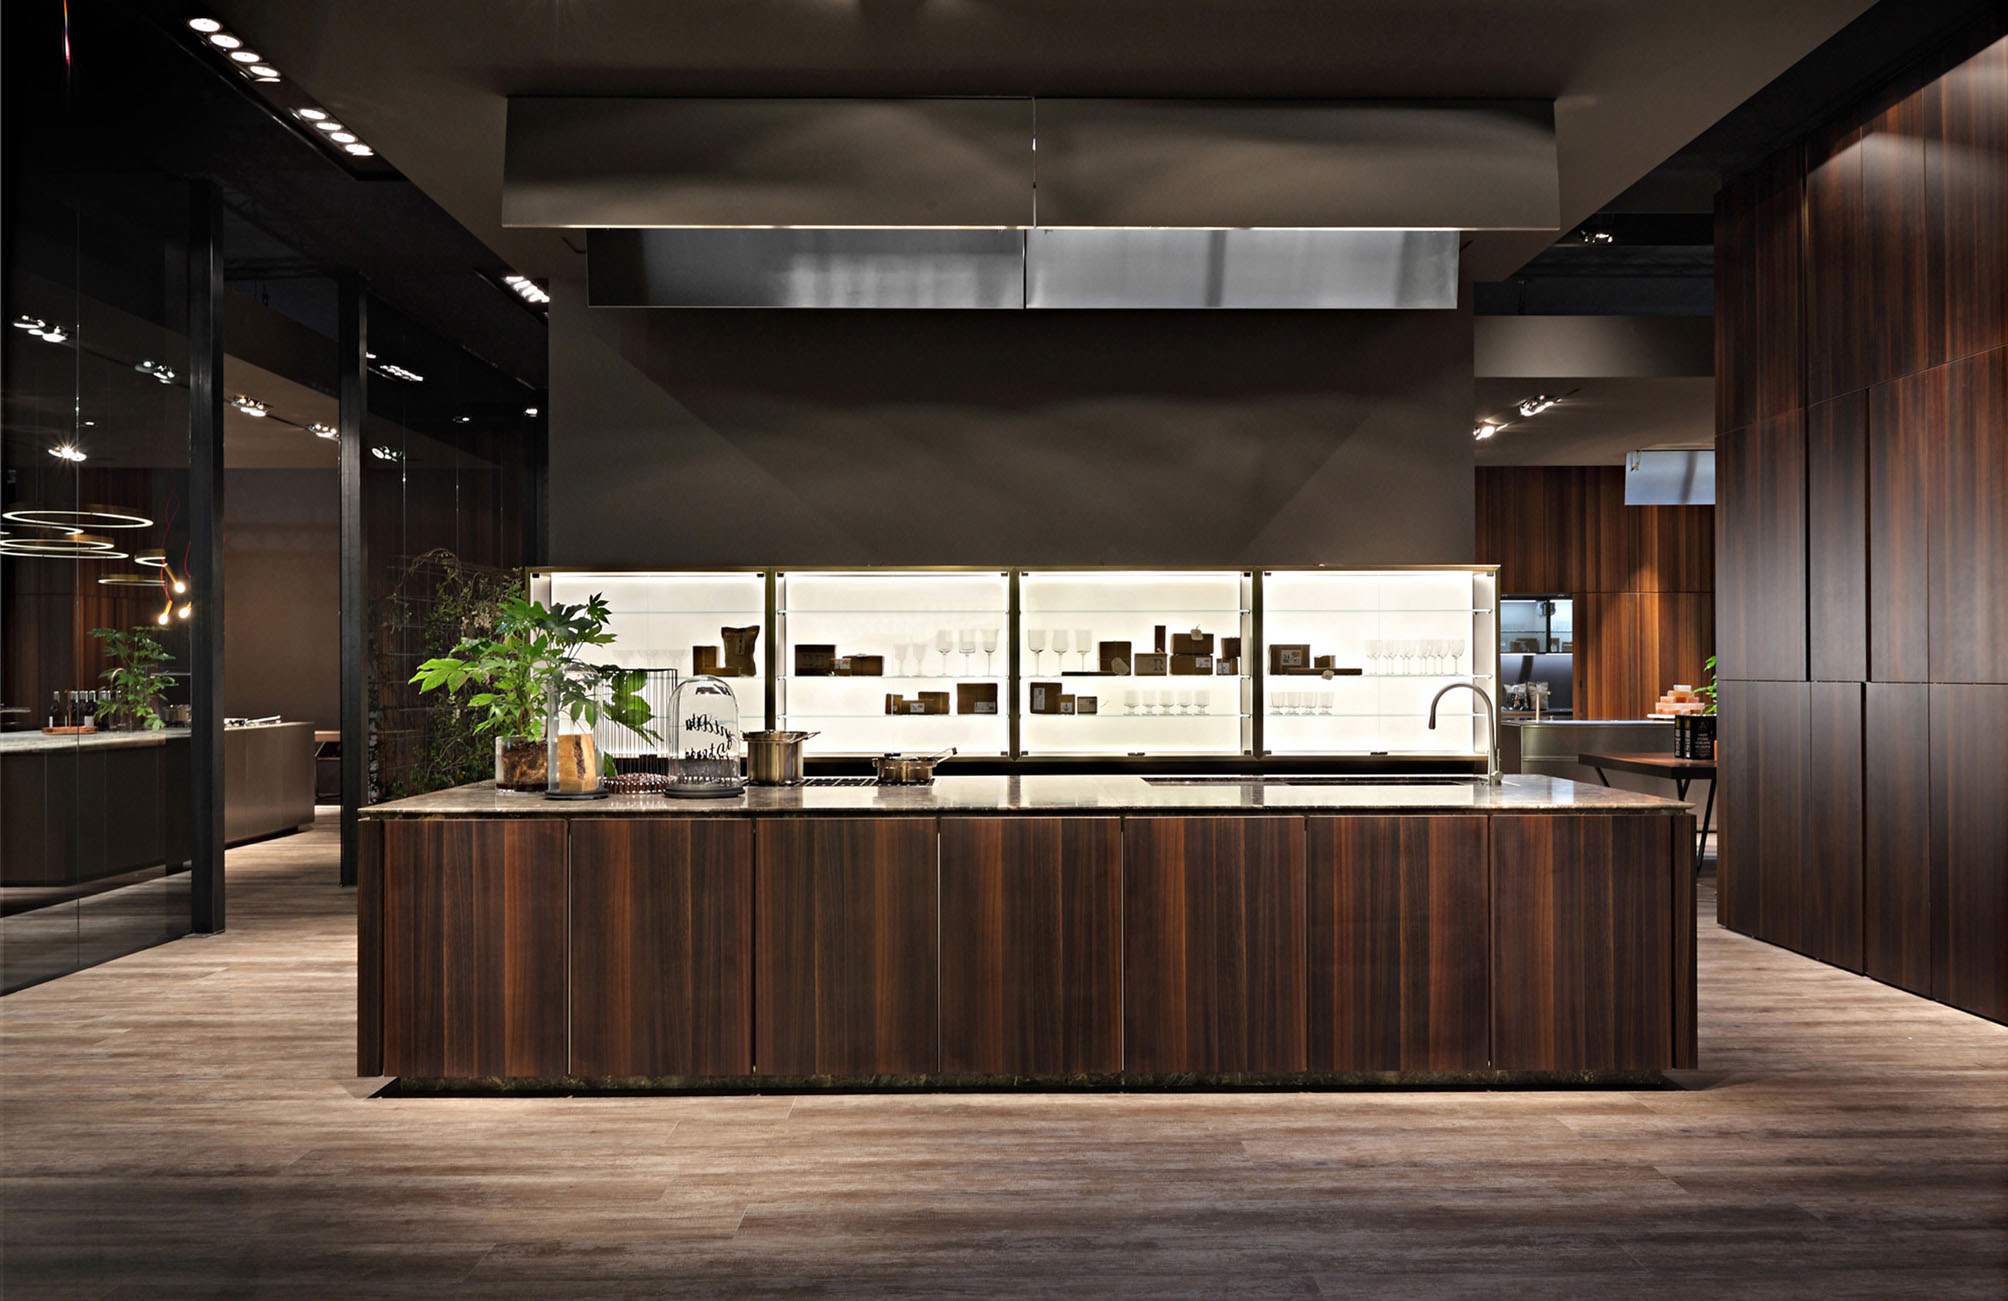 Rossana w75 kitchen system the kitchen and bathroom blog - Italian kitchen cabinets manufacturers ...